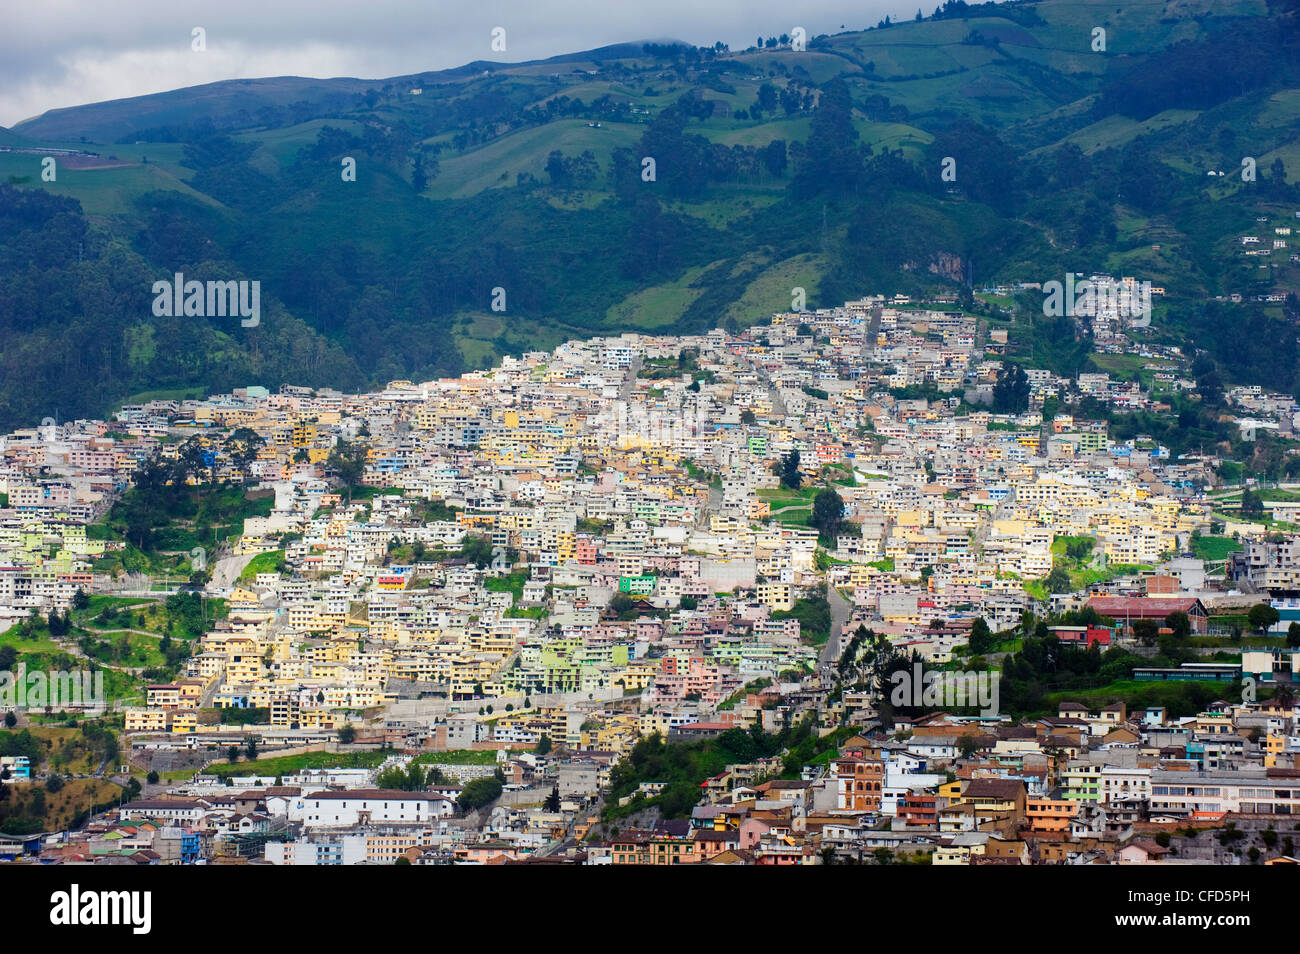 Colourful houses in old town, UNESCO World Heritage Site, Quito, Ecuador, South America - Stock Image